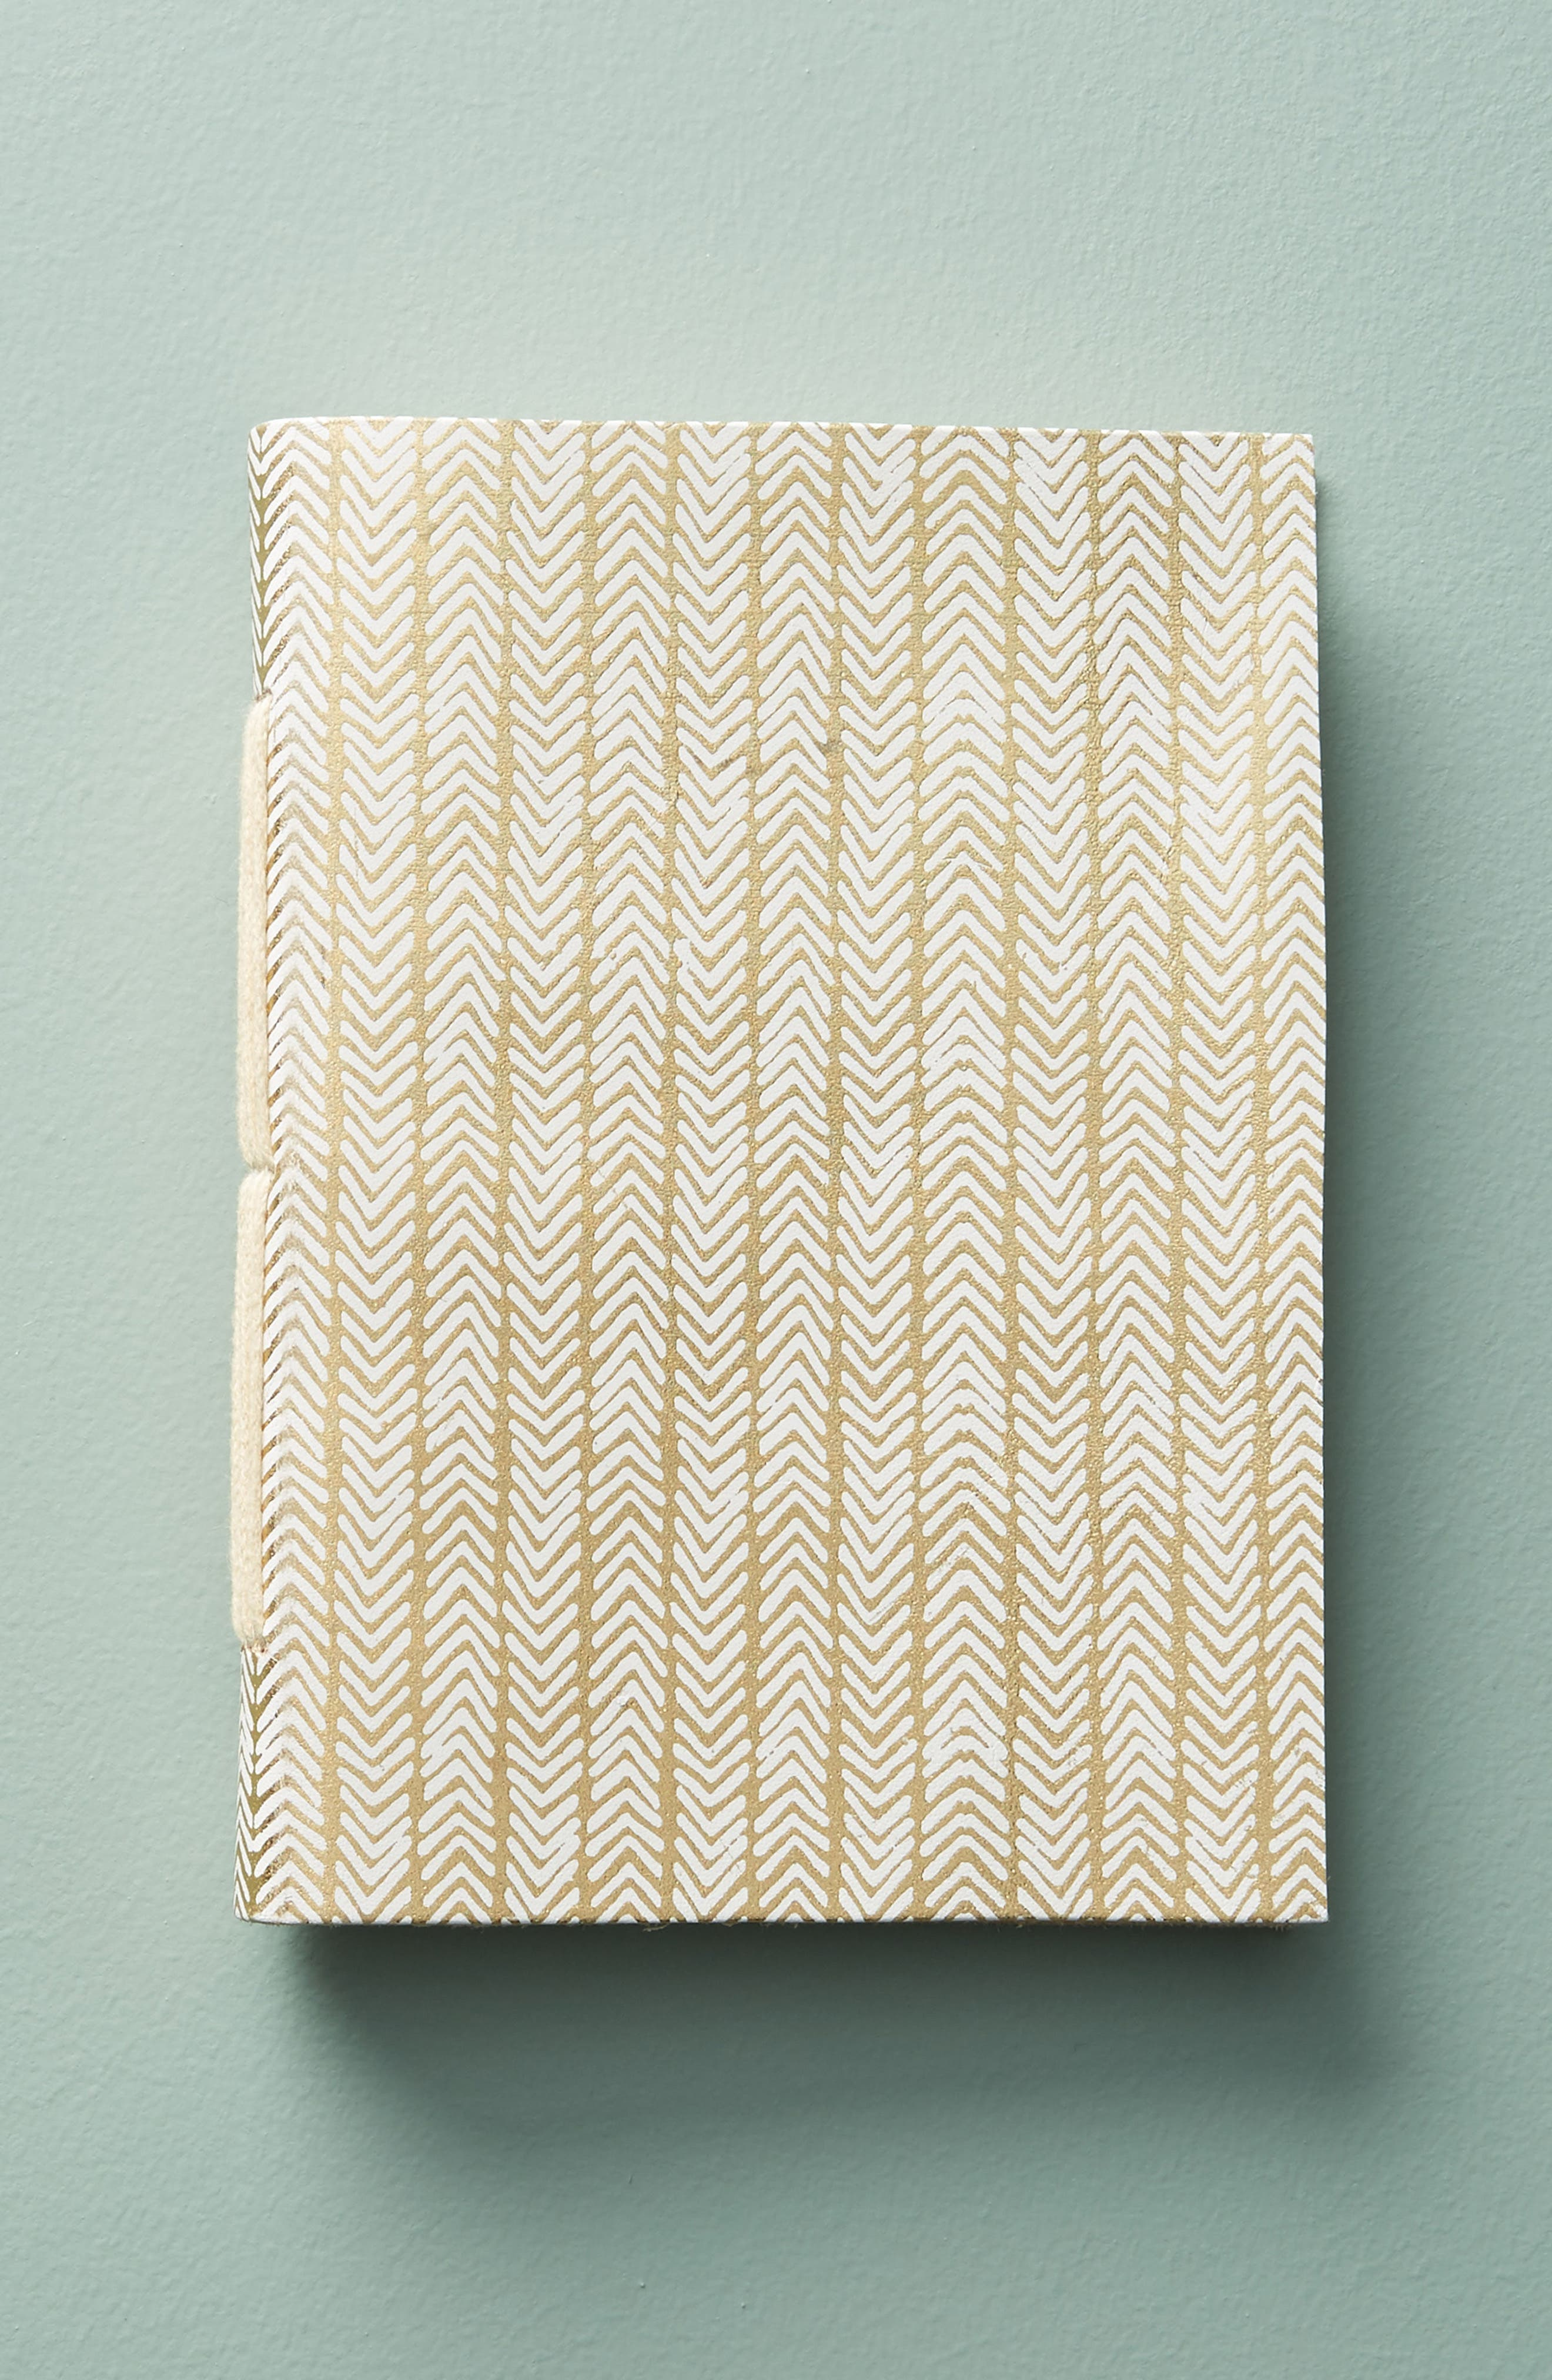 Gilded Leather Journal,                             Main thumbnail 1, color,                             710